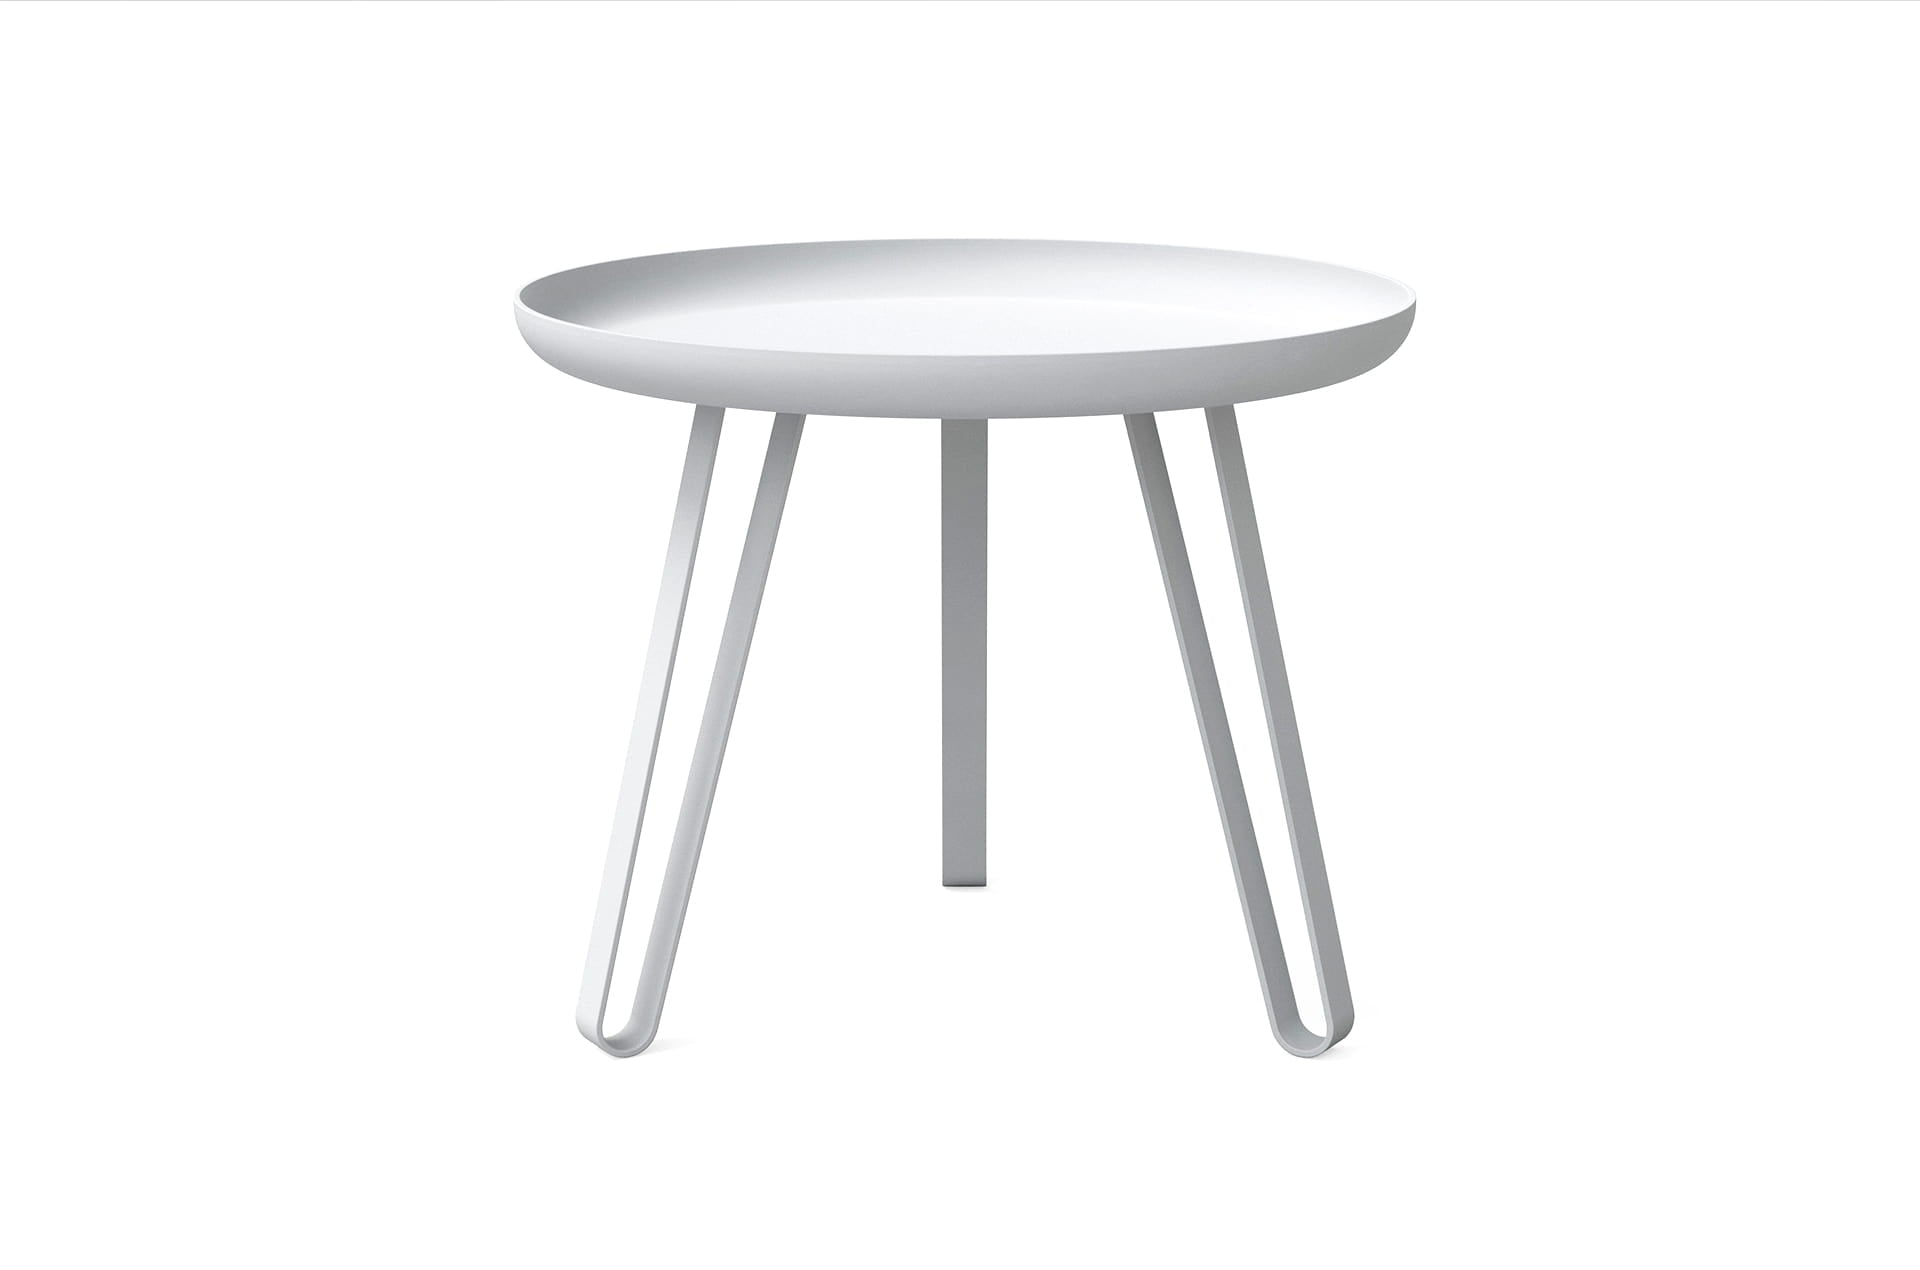 Table basse acier blanc 54cm, Carosello by Slawinski-PARIDEO design durable